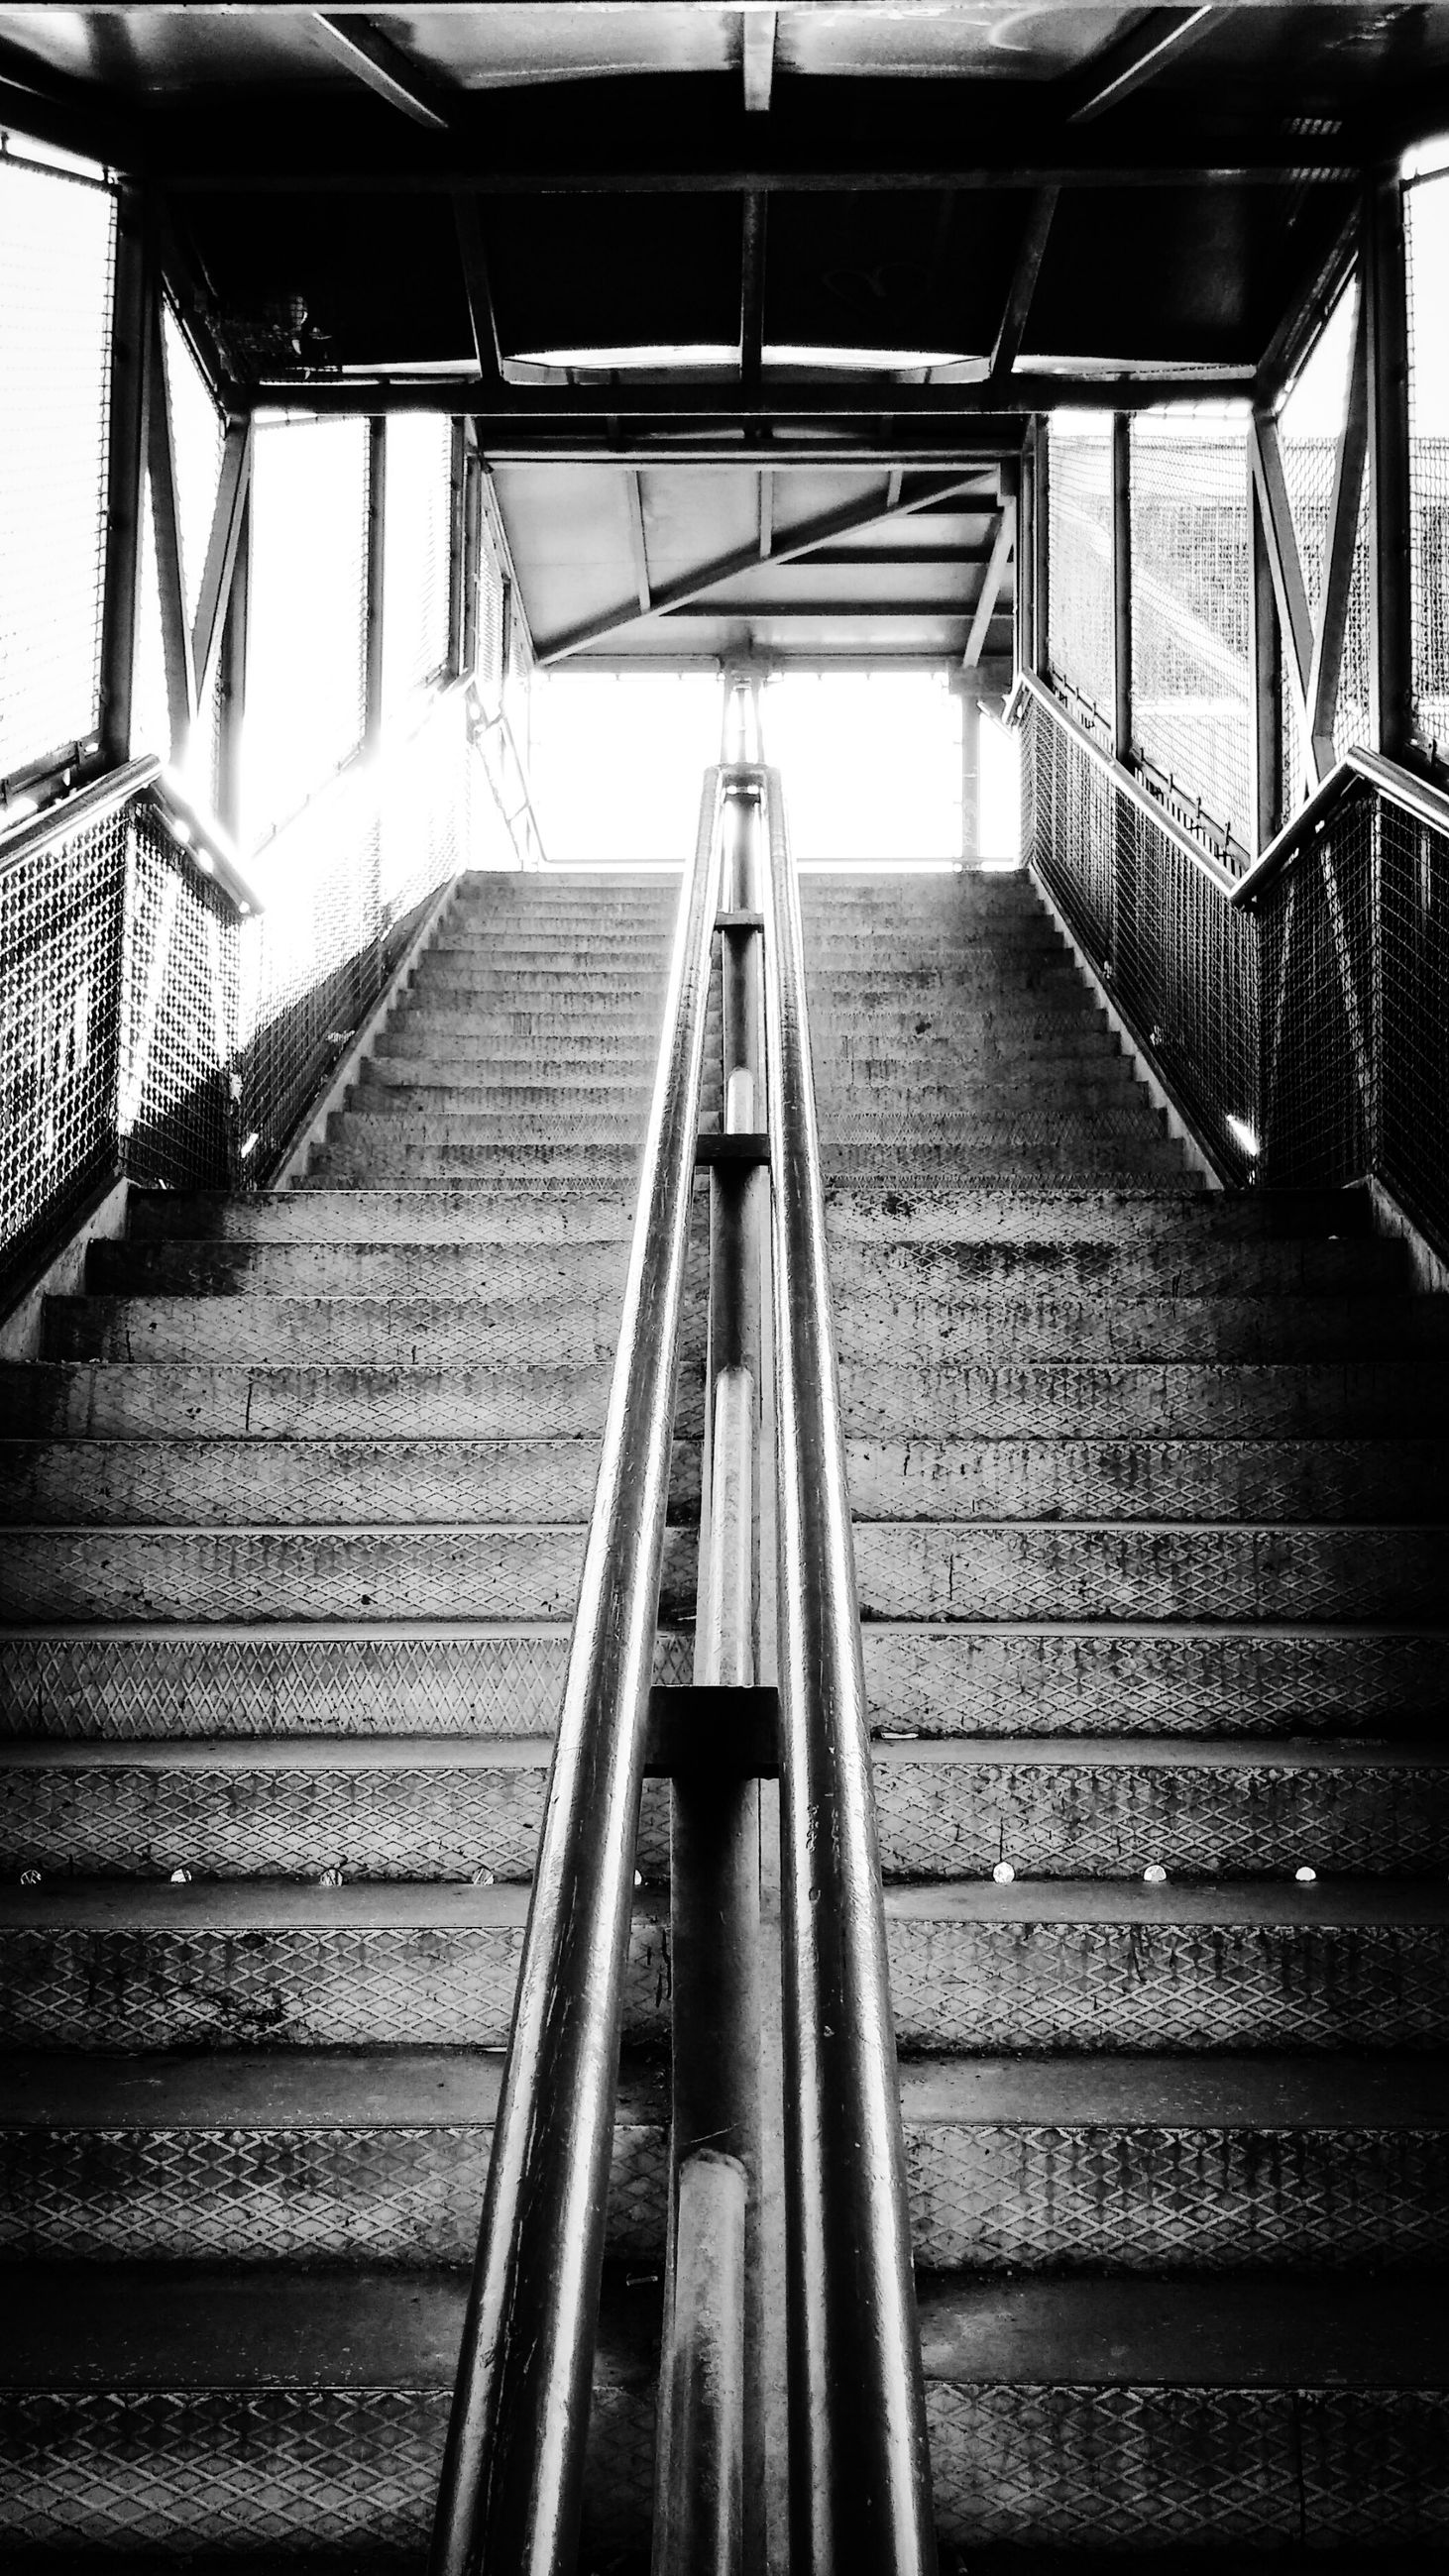 steps and staircases, steps, staircase, railing, low angle view, escalator, indoors, built structure, architecture, the way forward, metal, stairs, transportation, diminishing perspective, high angle view, steps and staircase, sunlight, day, no people, roof